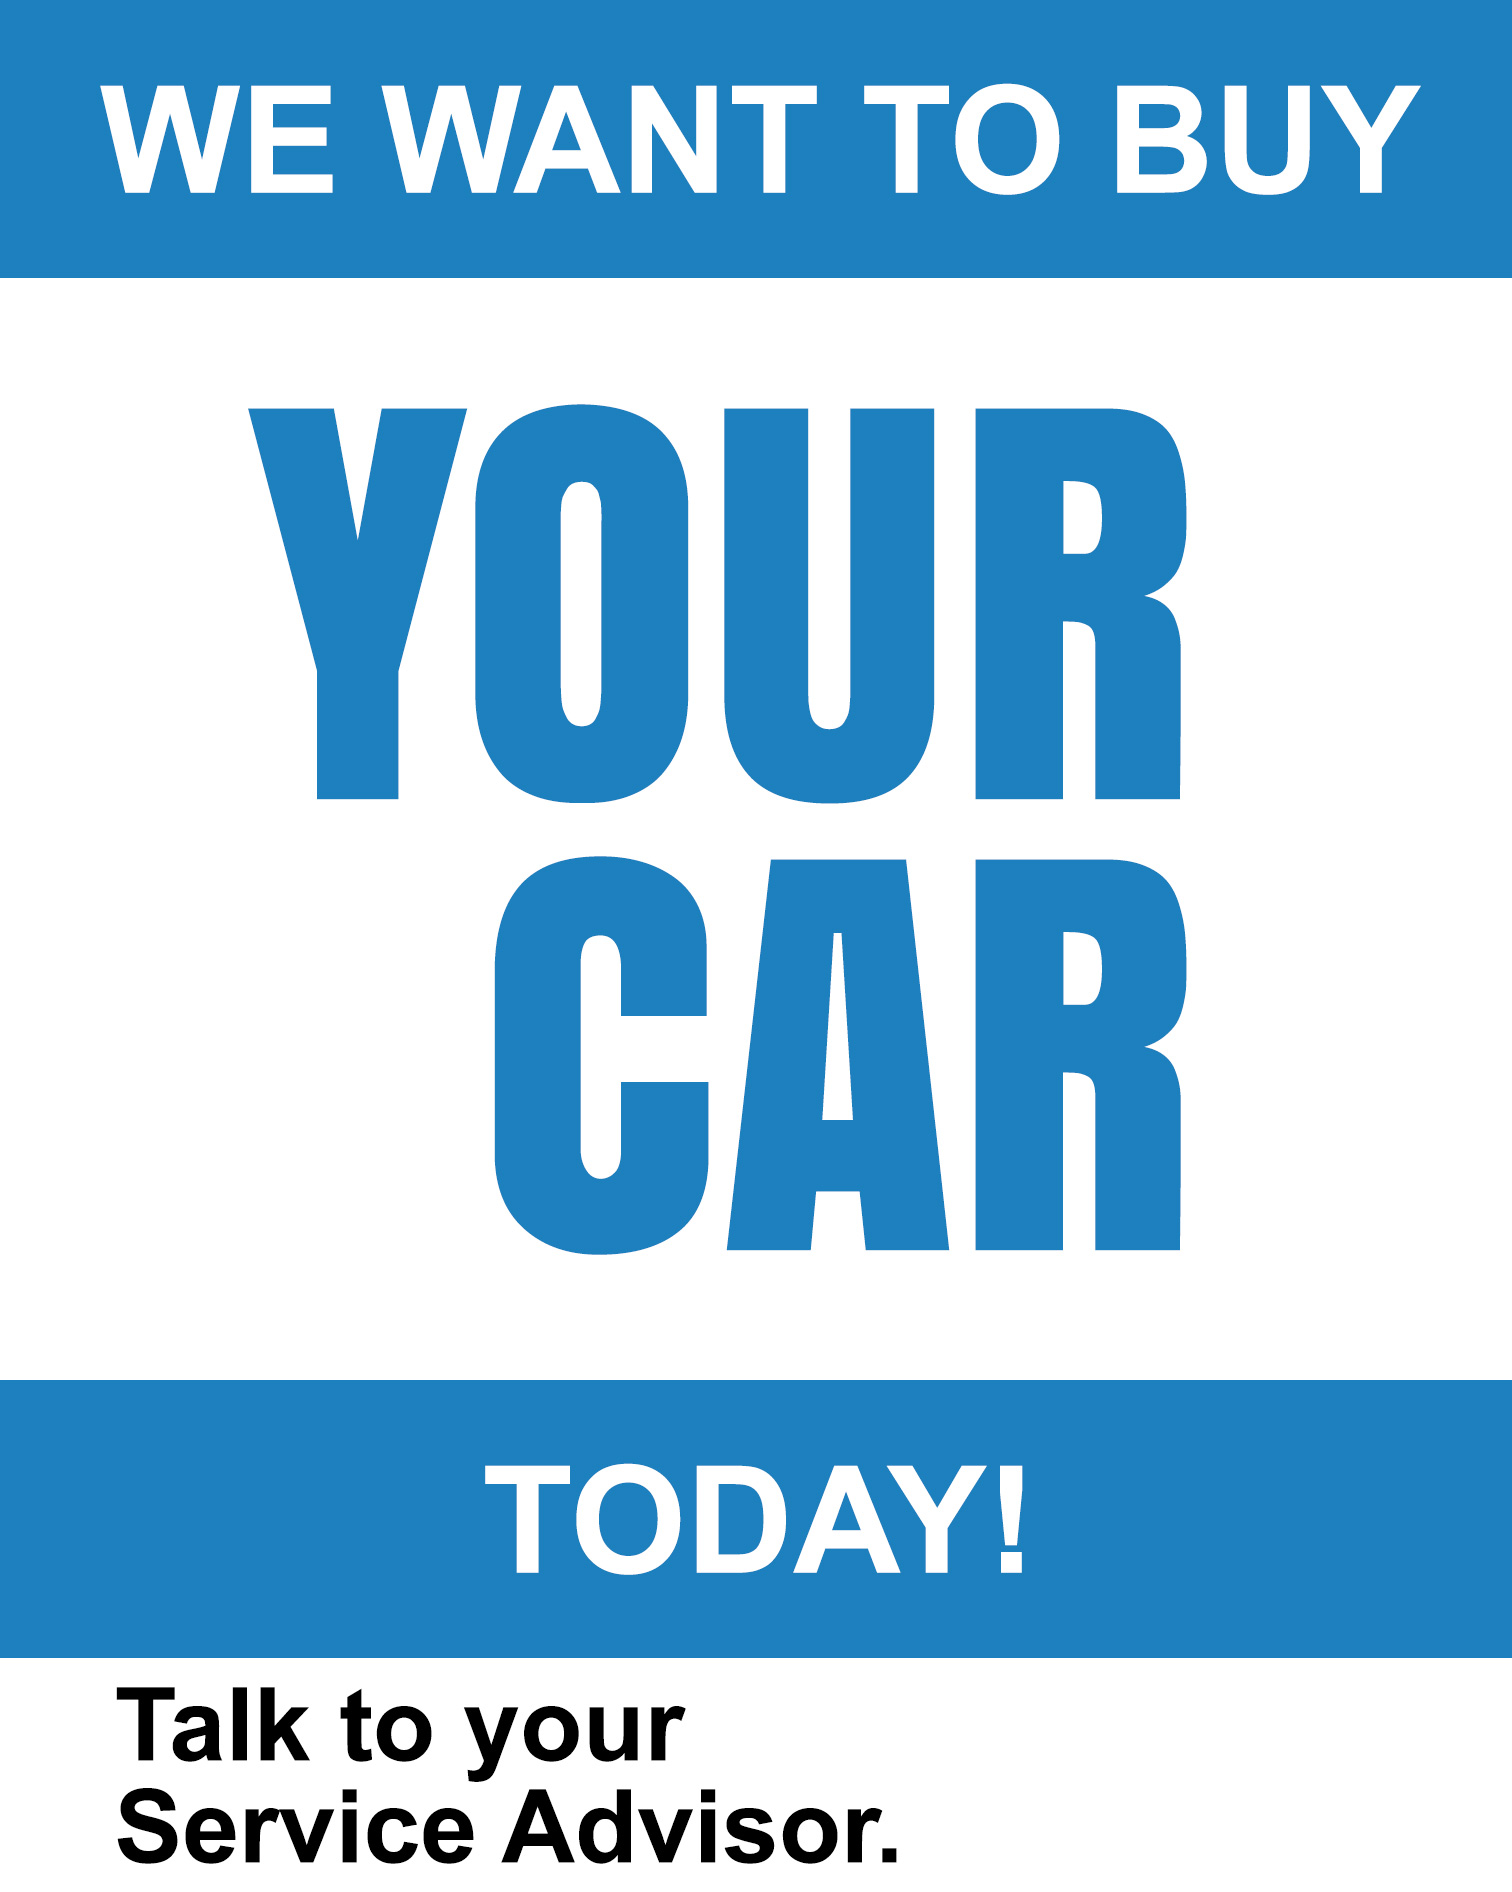 We want to buy your car today